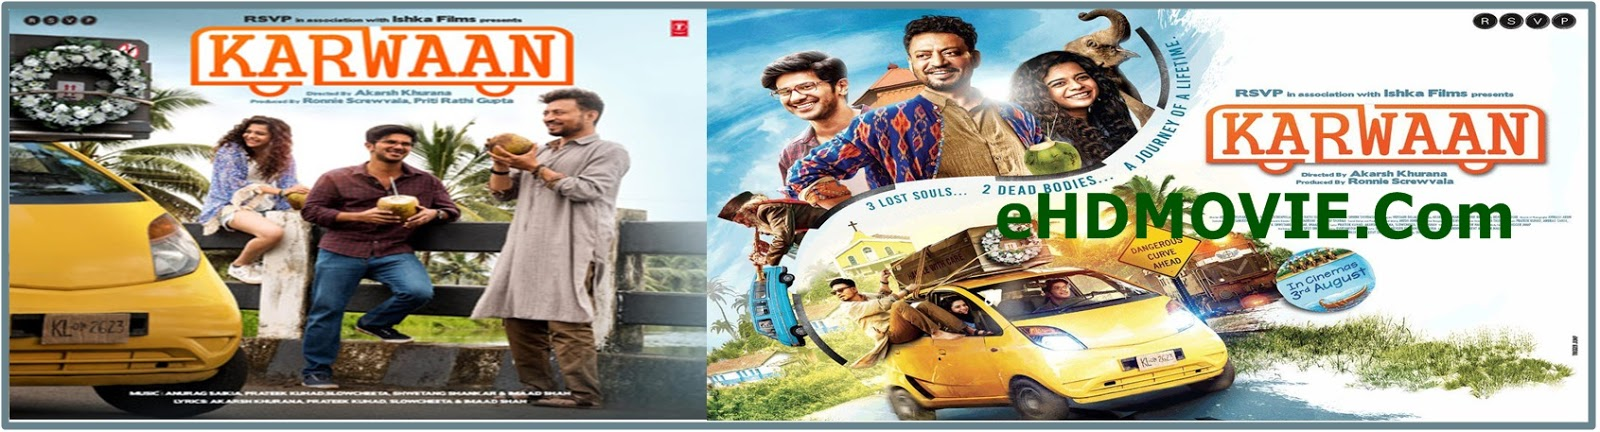 Karwaan 2018 Full Movie Hindi 1080p - 720p - HEVC - 480p ORG WEB-DL 400MB - 500MB - 1.4GB - 3GB ESubs Free Download